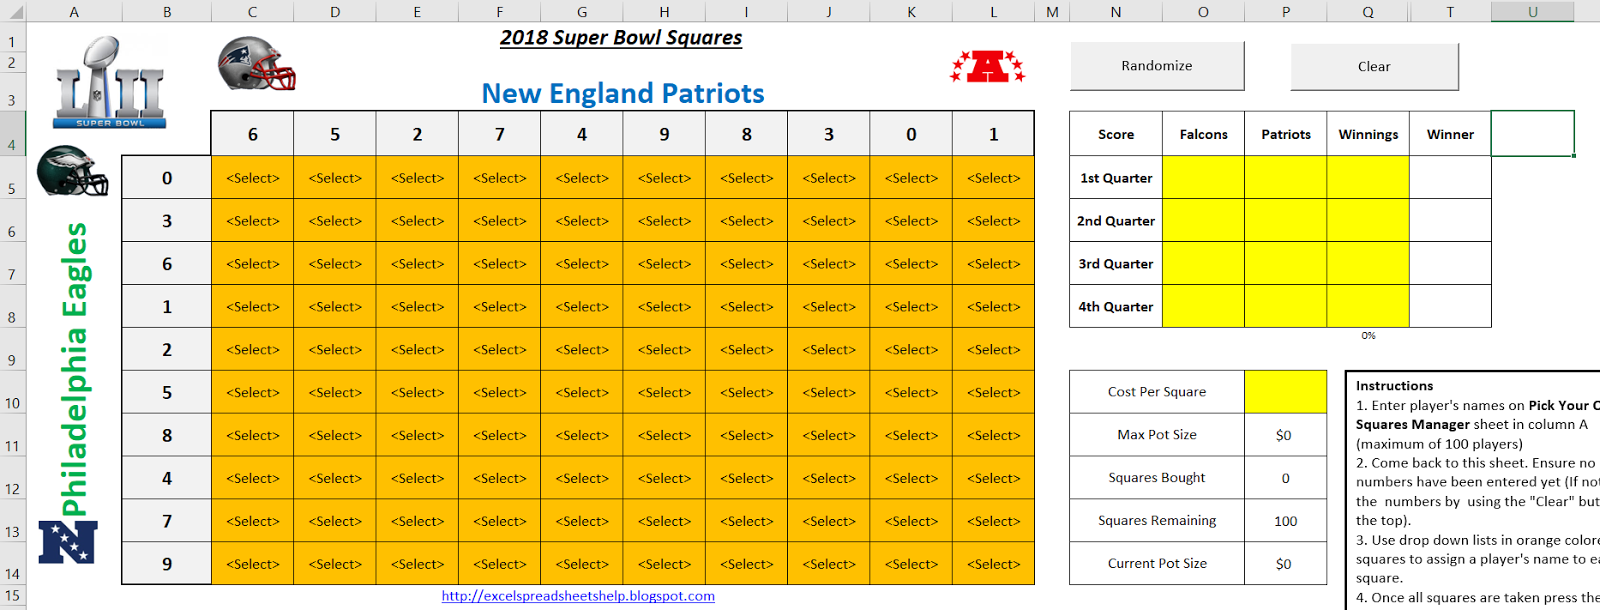 Excel Spreadsheets Help: Super Bowl Squares Template 2018